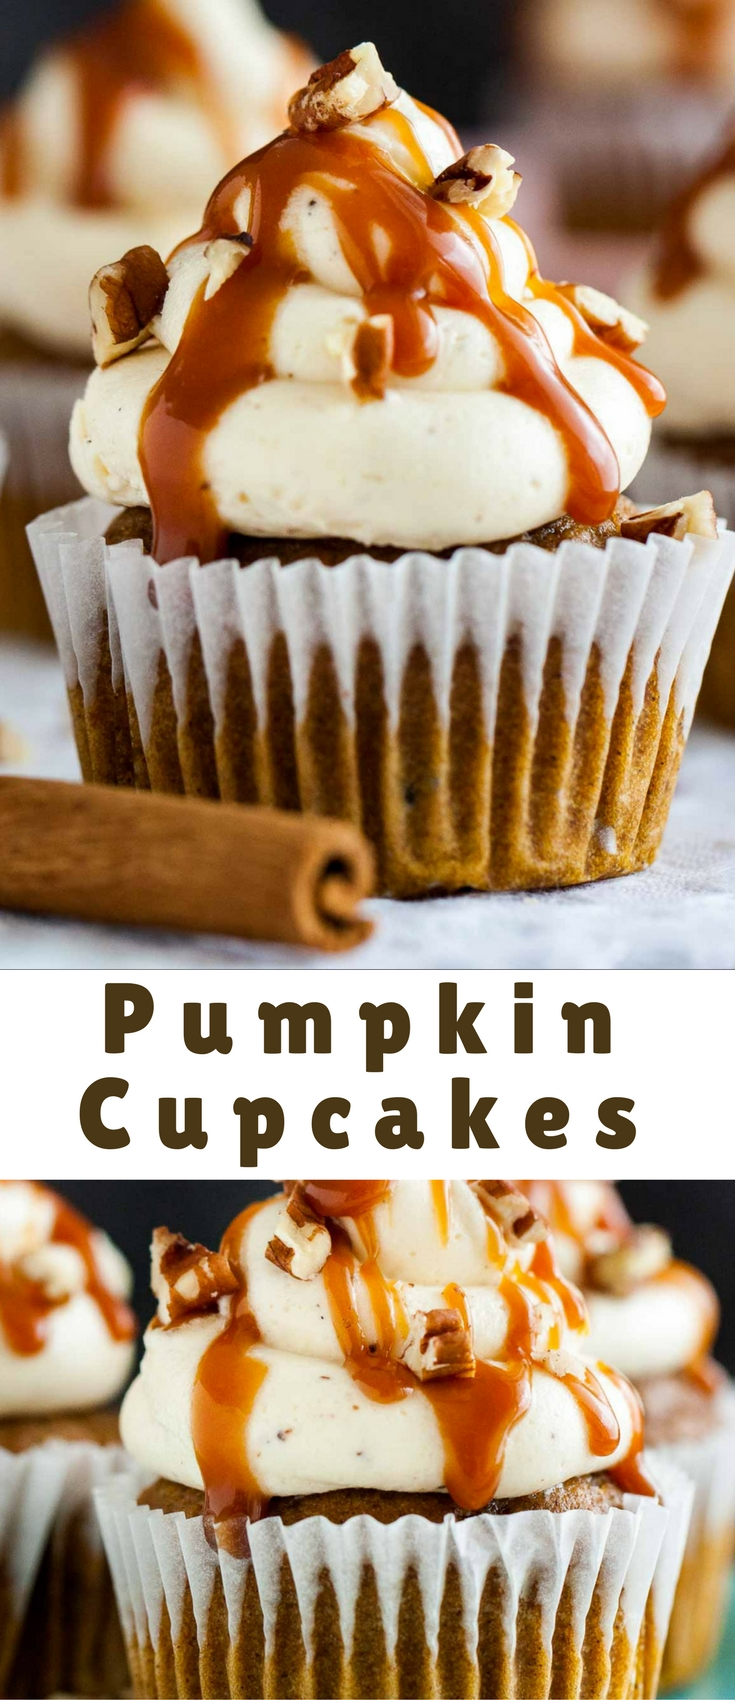 These Pumpkin Cupcakes are the perfect fall dessert! Perfectly spiced pumpkin cupcakes topped with an easy brown butter frosting and drizzled with salted caramel sauce. A must-bake this fall!